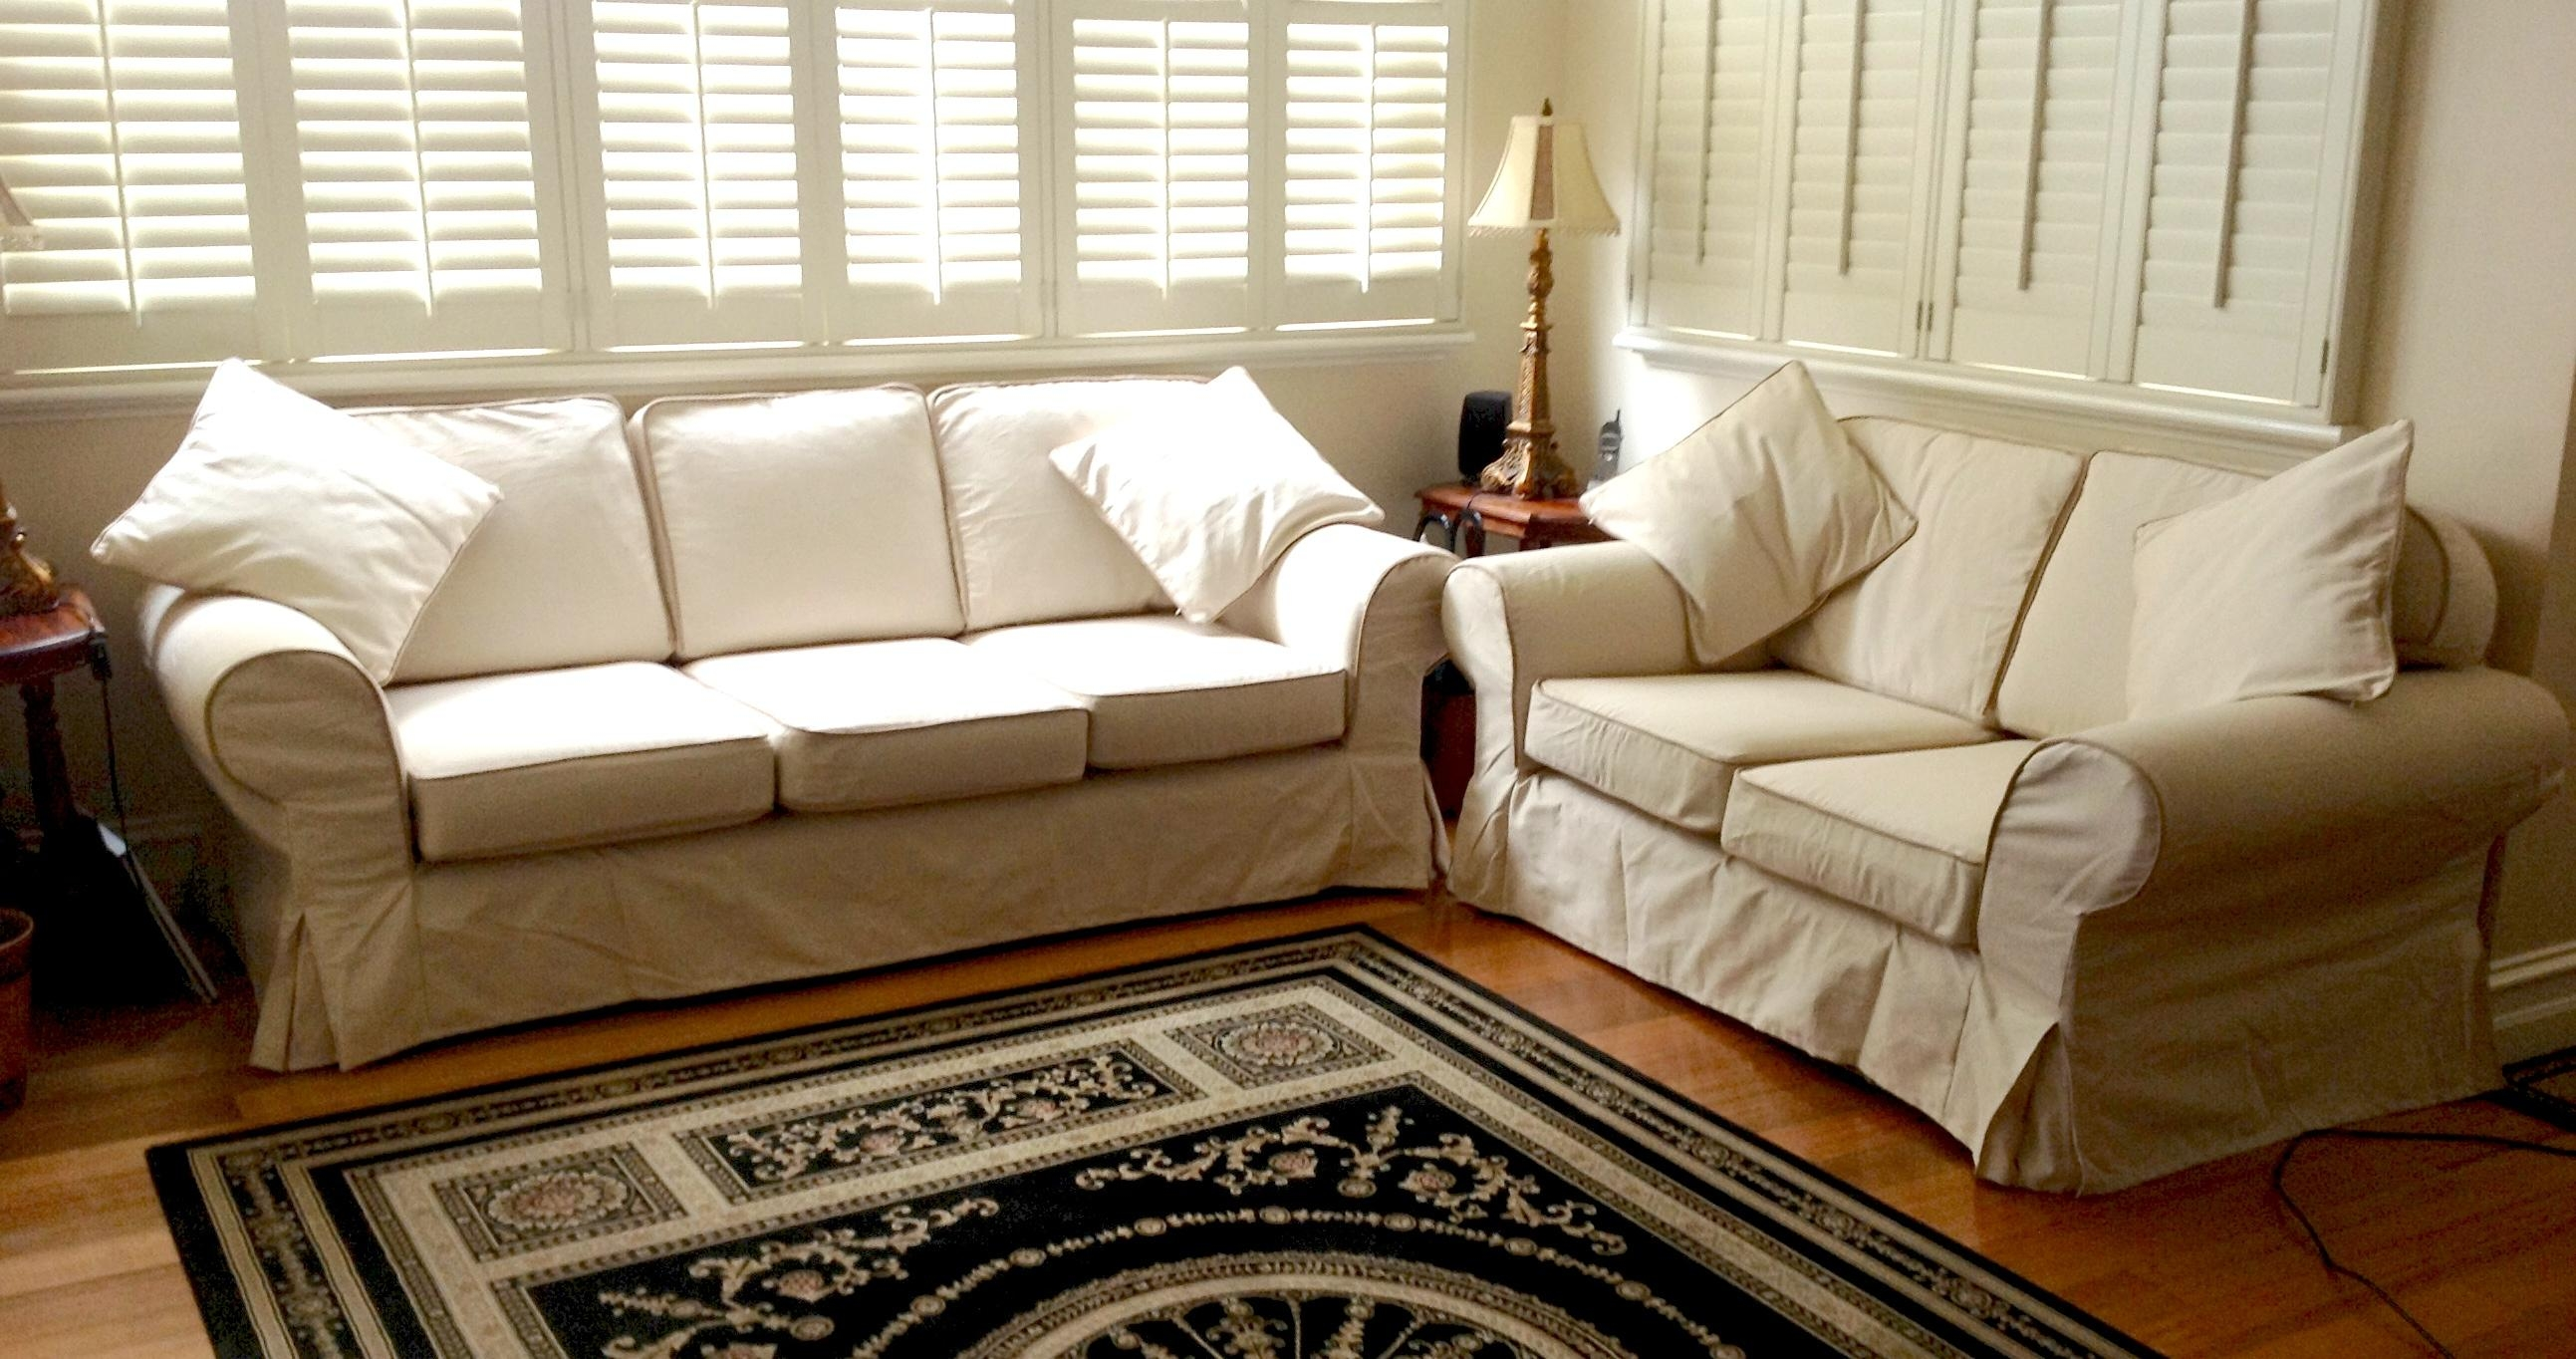 Custom Slipcovers And Couch Cover For Any Sofa Online Regarding Sofa Settee Covers (Image 2 of 22)